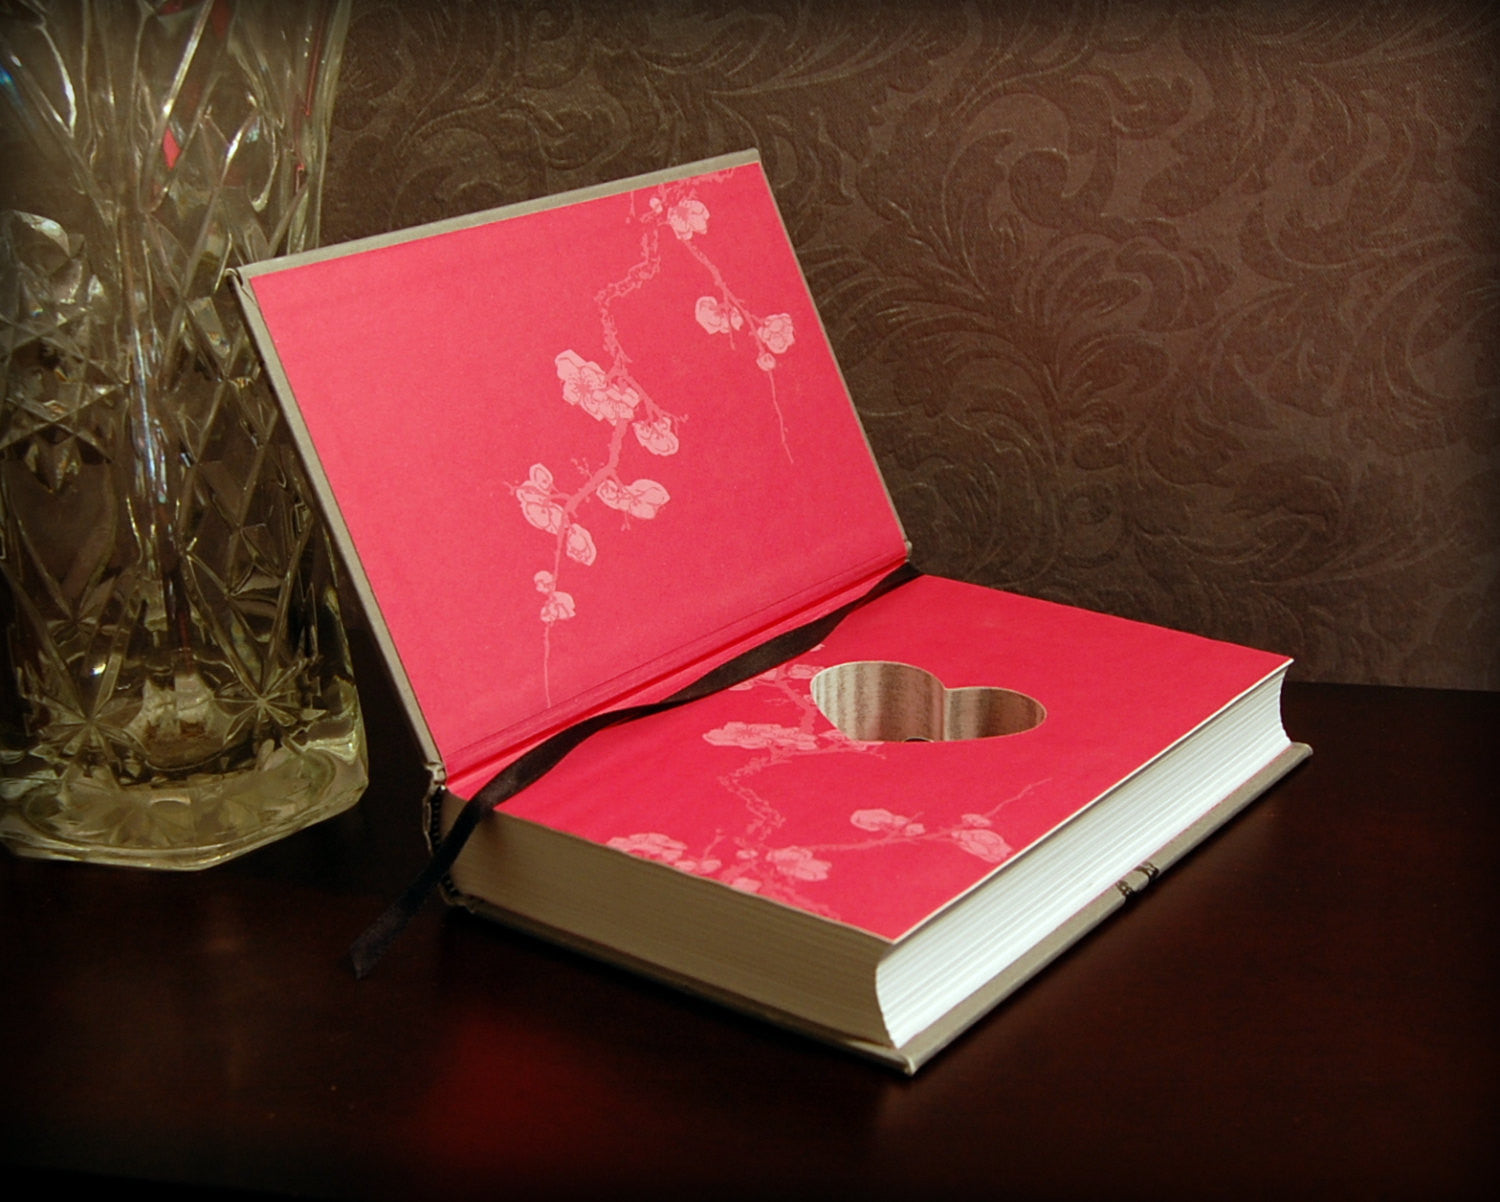 Pride and Prejudice (B) (with Heart cutout) / Jane Austen - Secret Safe Books  - 1